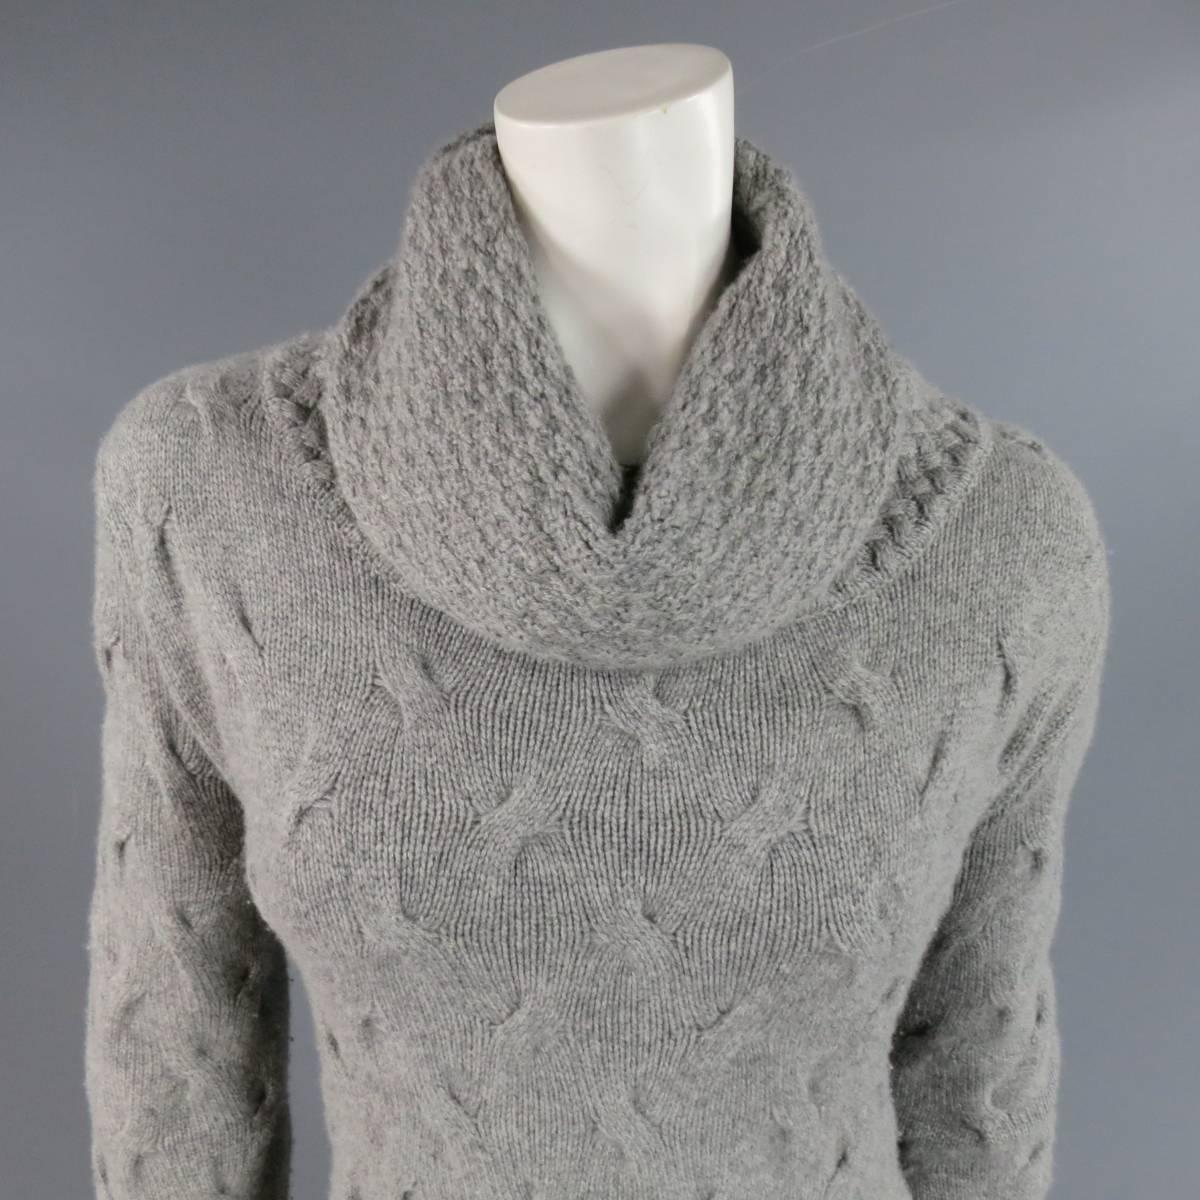 Knitting Pattern Cashmere Cowl : LORO PIANA Size L Grey Cashmere Textured Knit Cowl Neck Dress For Sale at 1st...